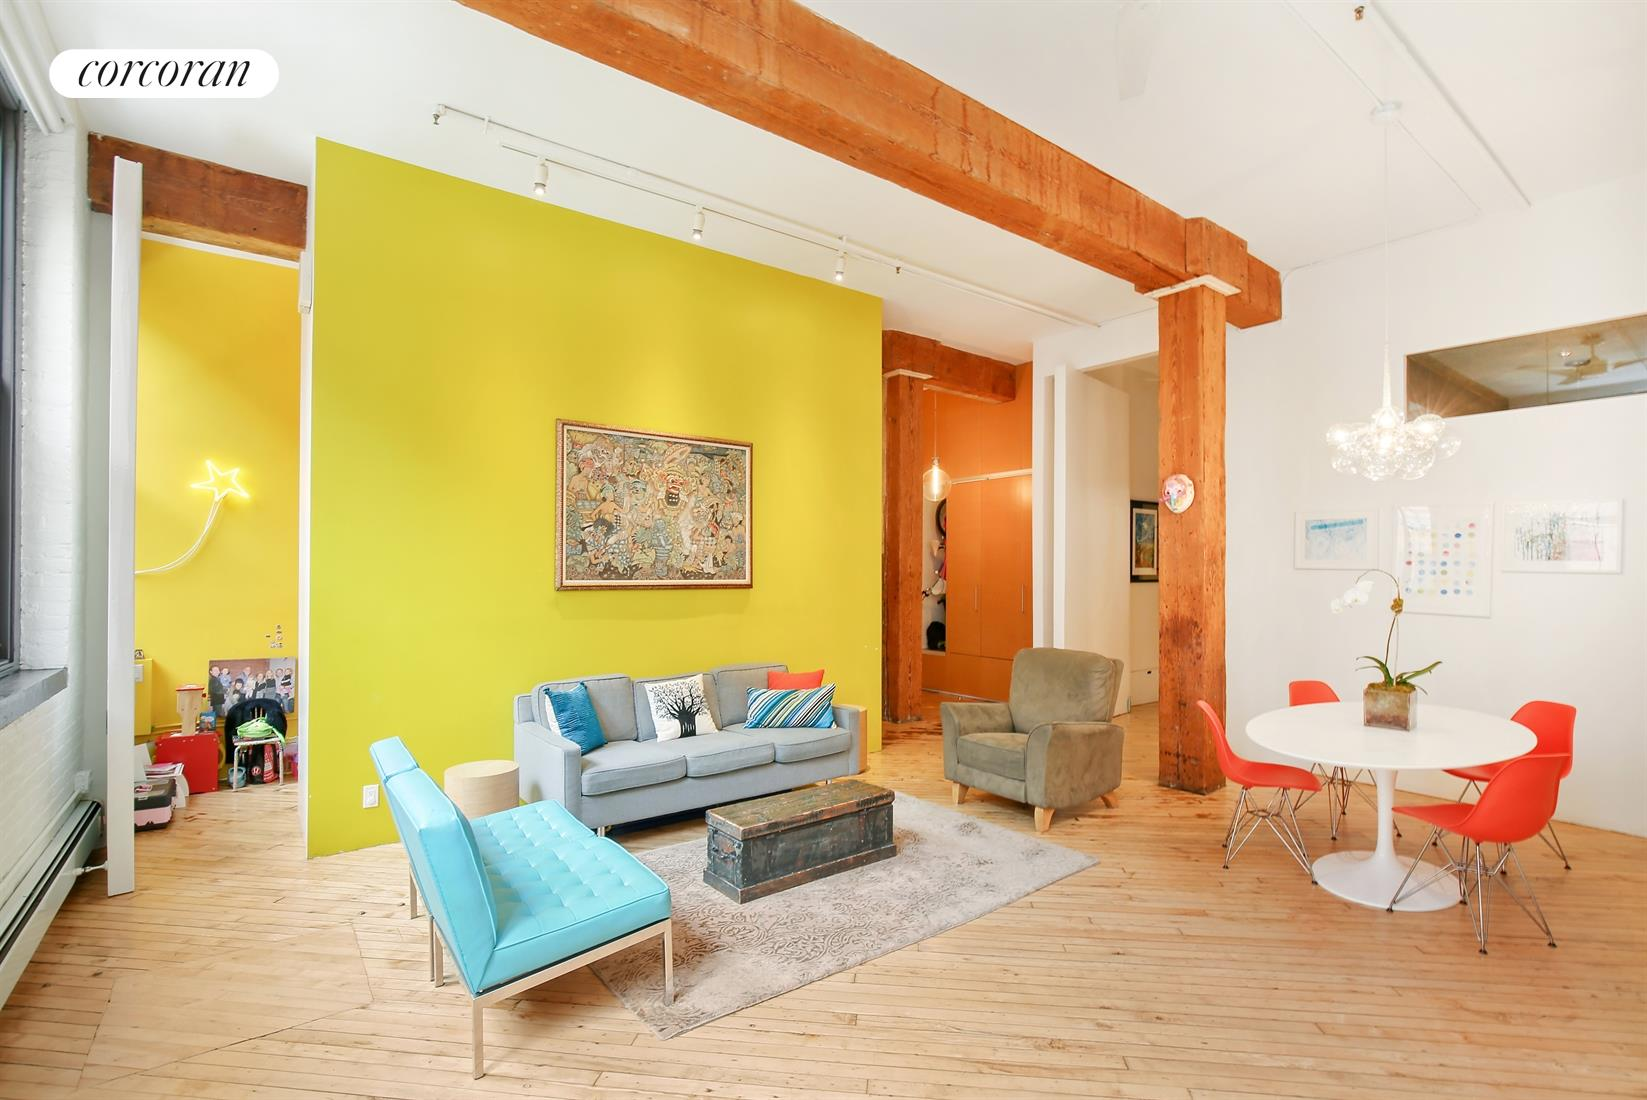 31 Washington Street, 5, Living Room with Dramatic Beams and Ceiling Height